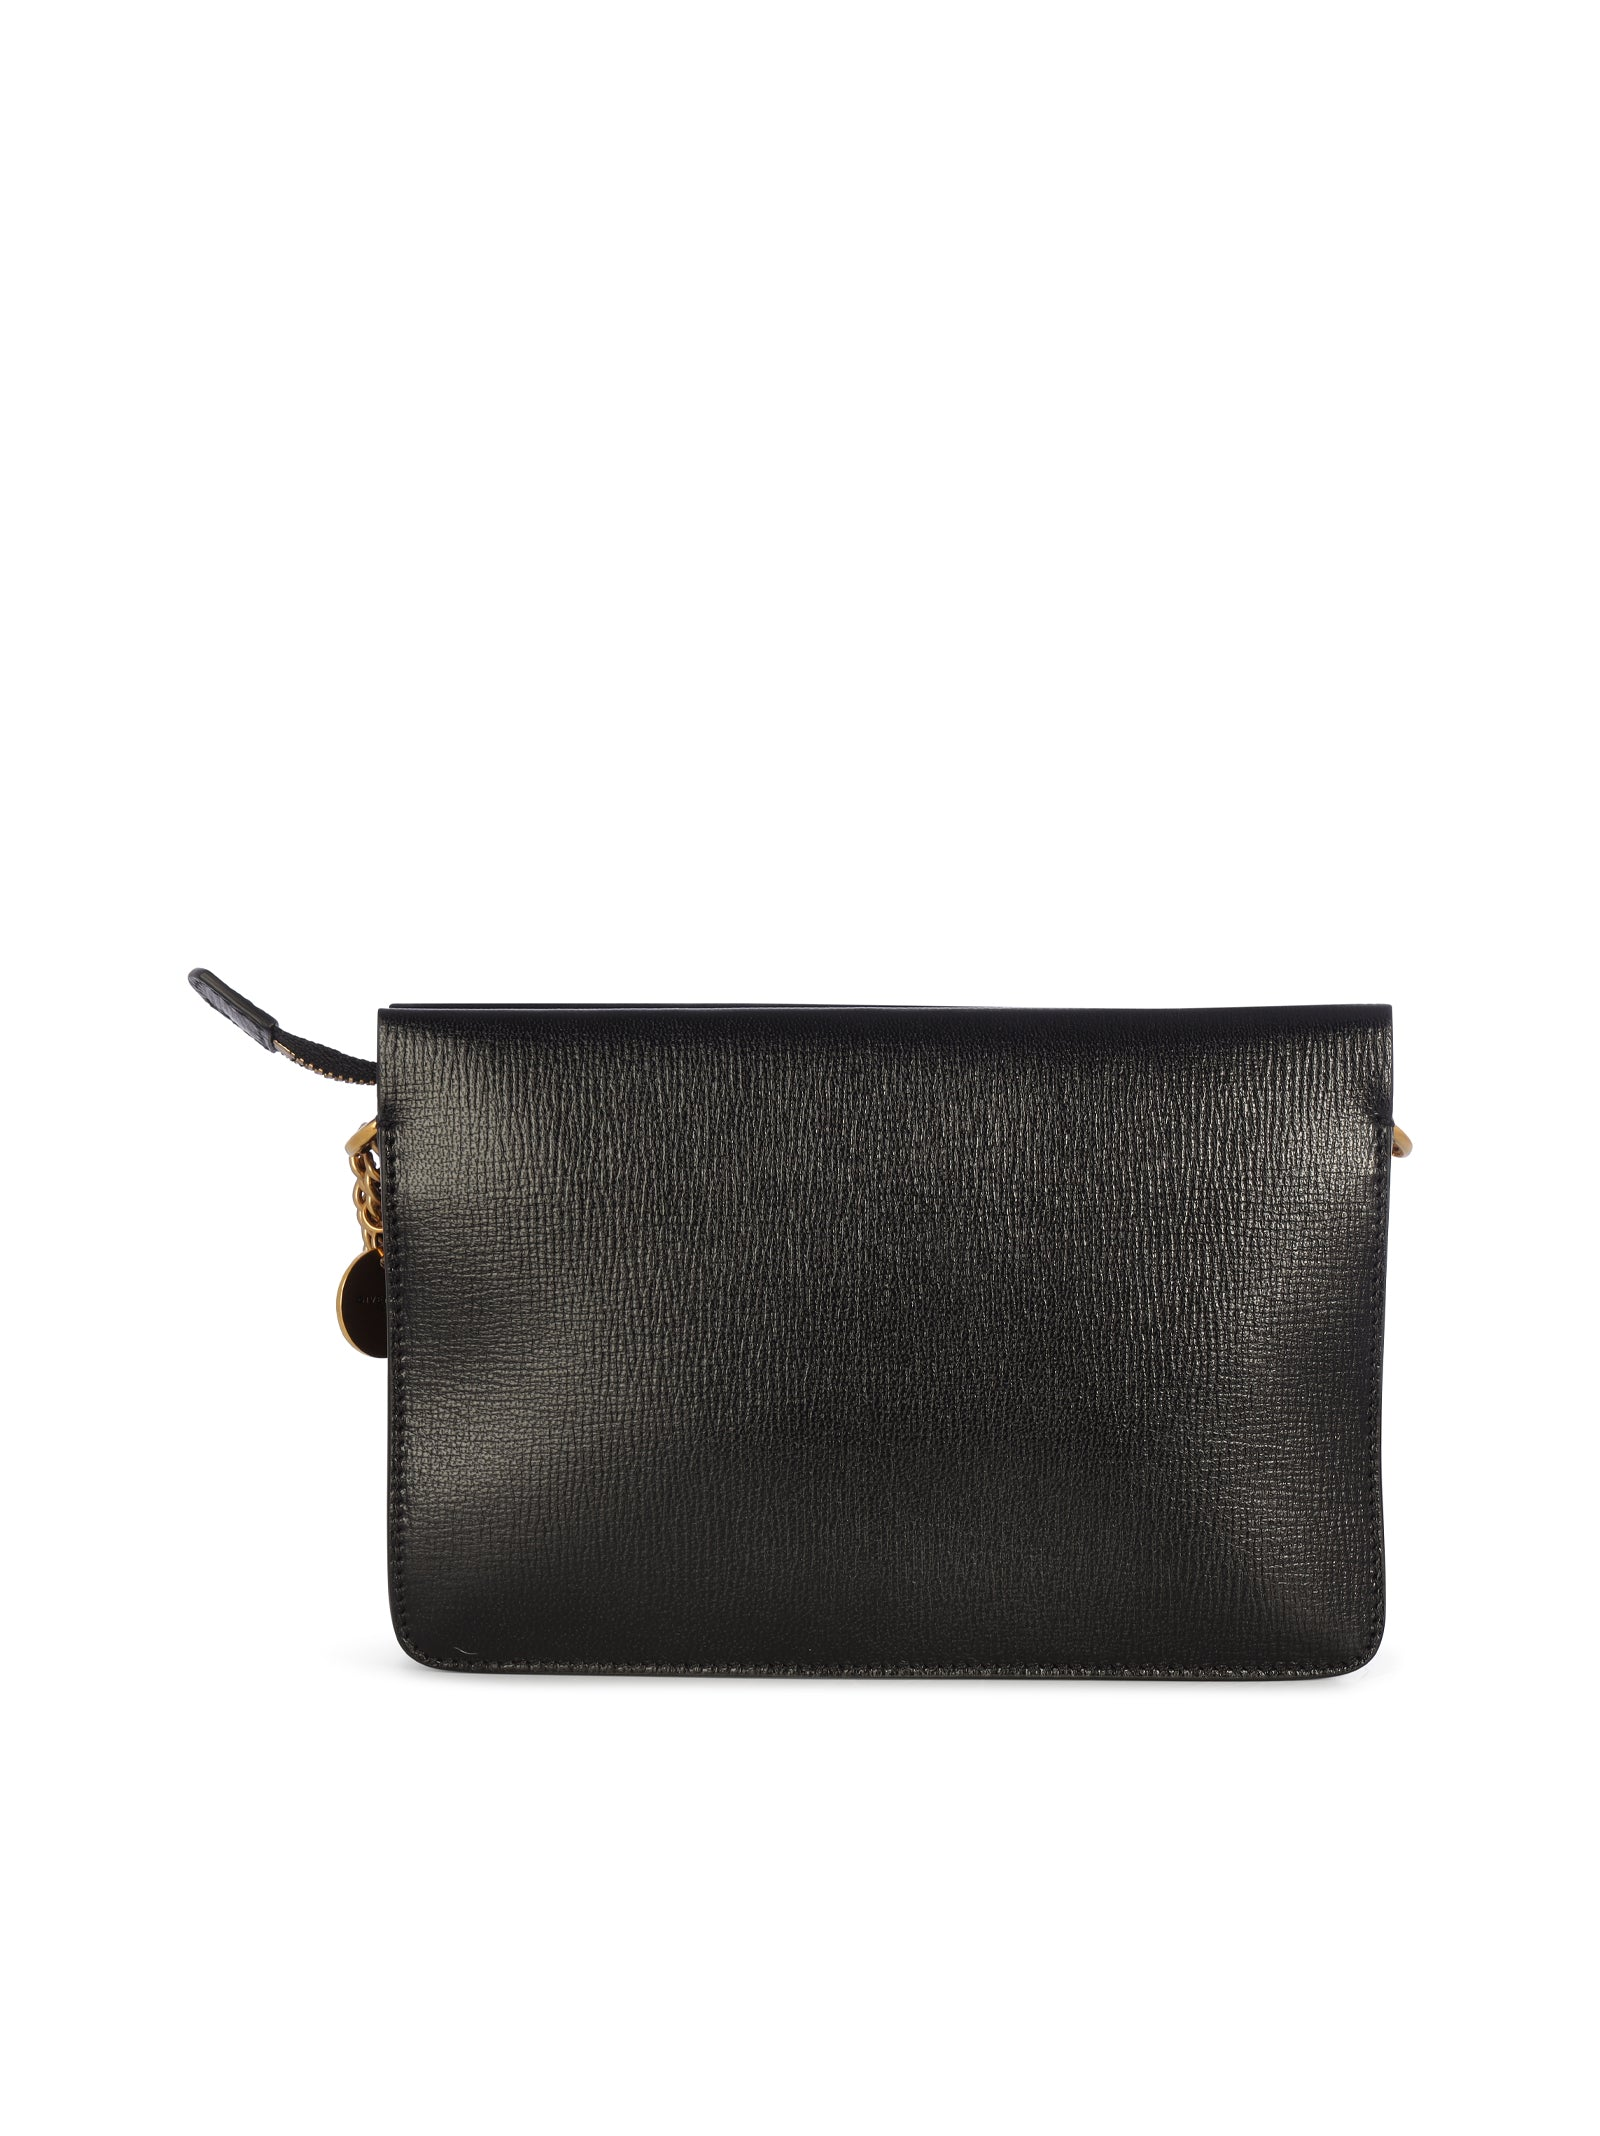 CROSS 3-XBODY BAG